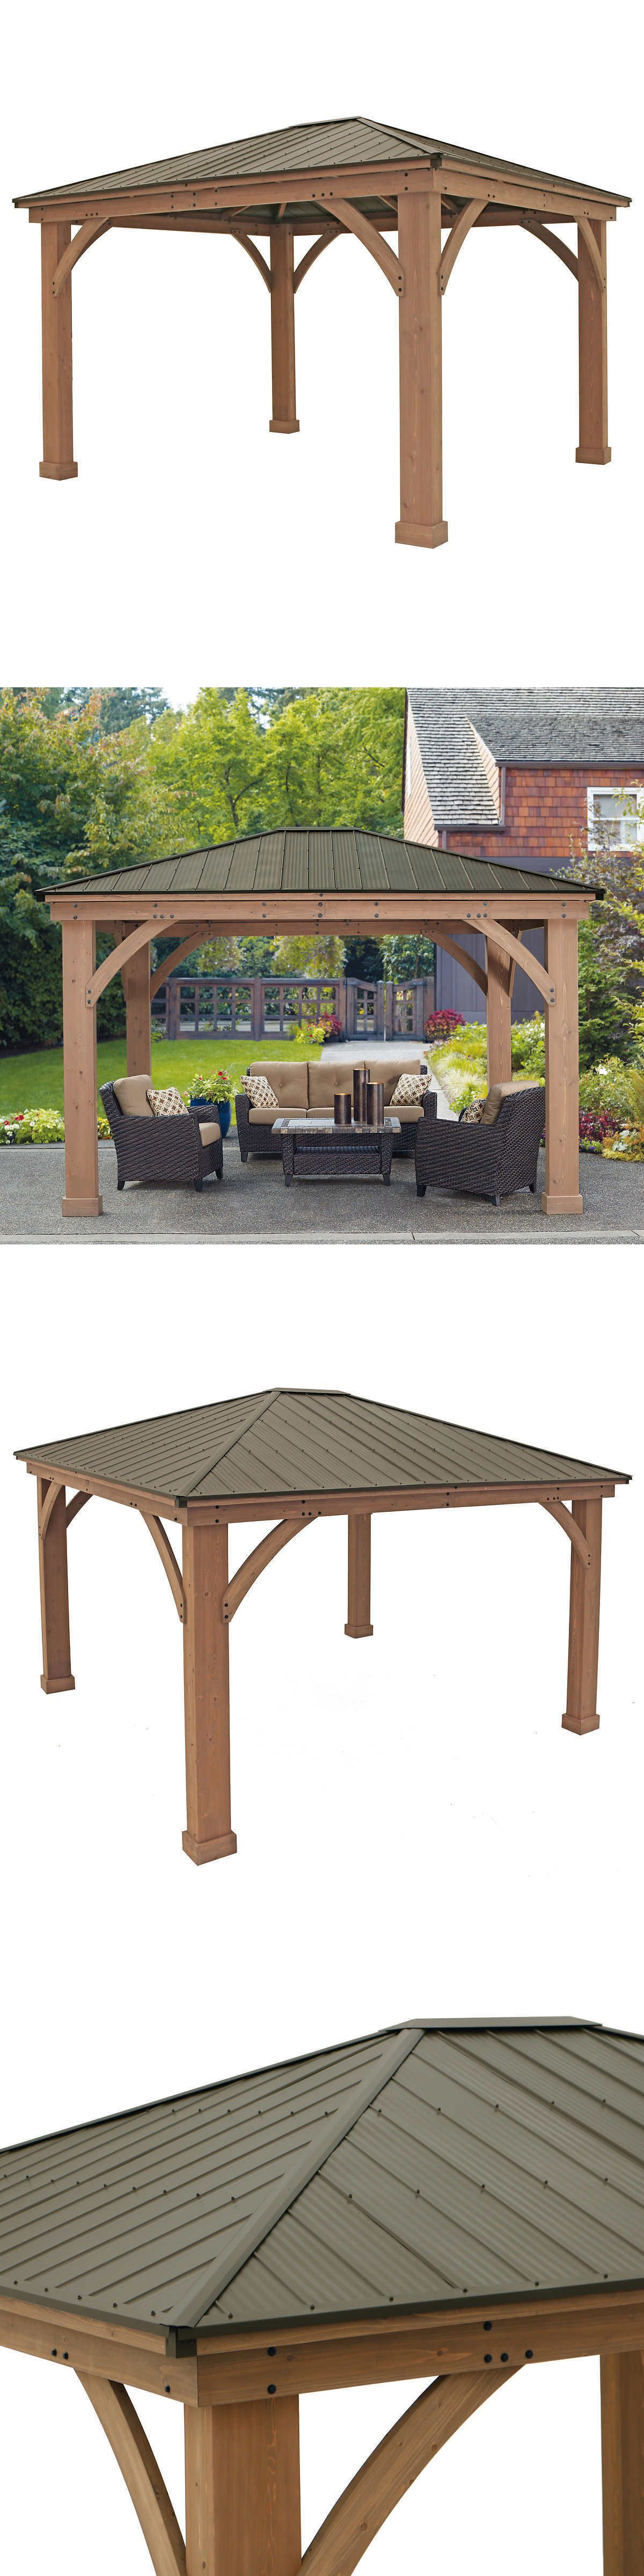 Gazebos 180995 Yardistry 12 X 14 Cedar Gazebo With Aluminum Roof